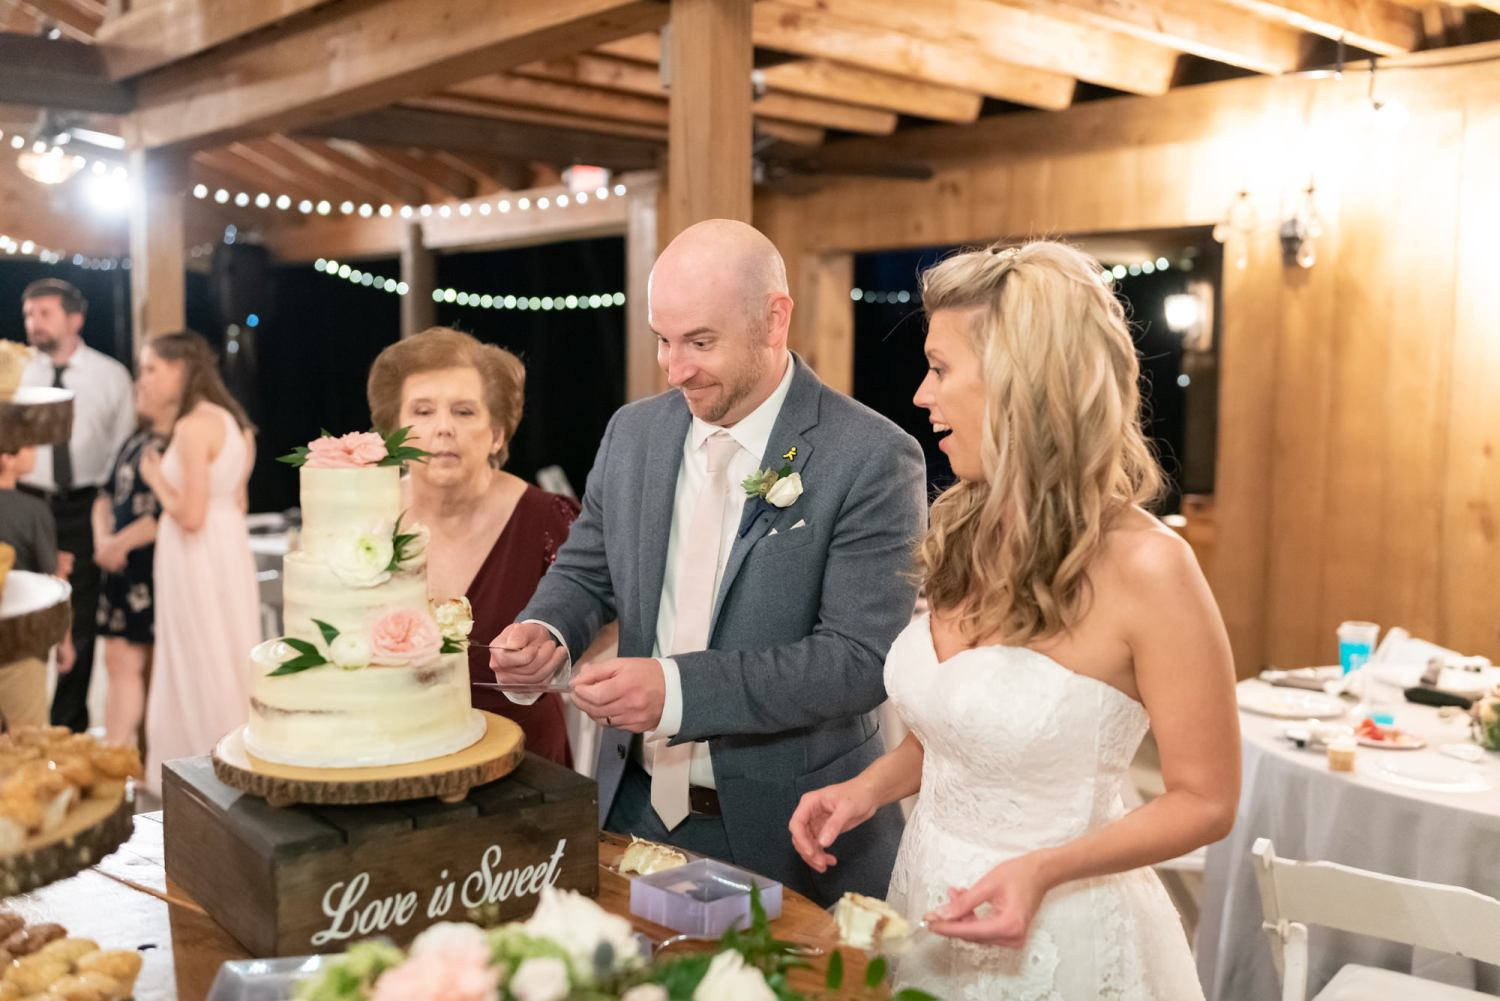 Bride and groom having fun with the cake cutting - Wildhorse at Parker Farms